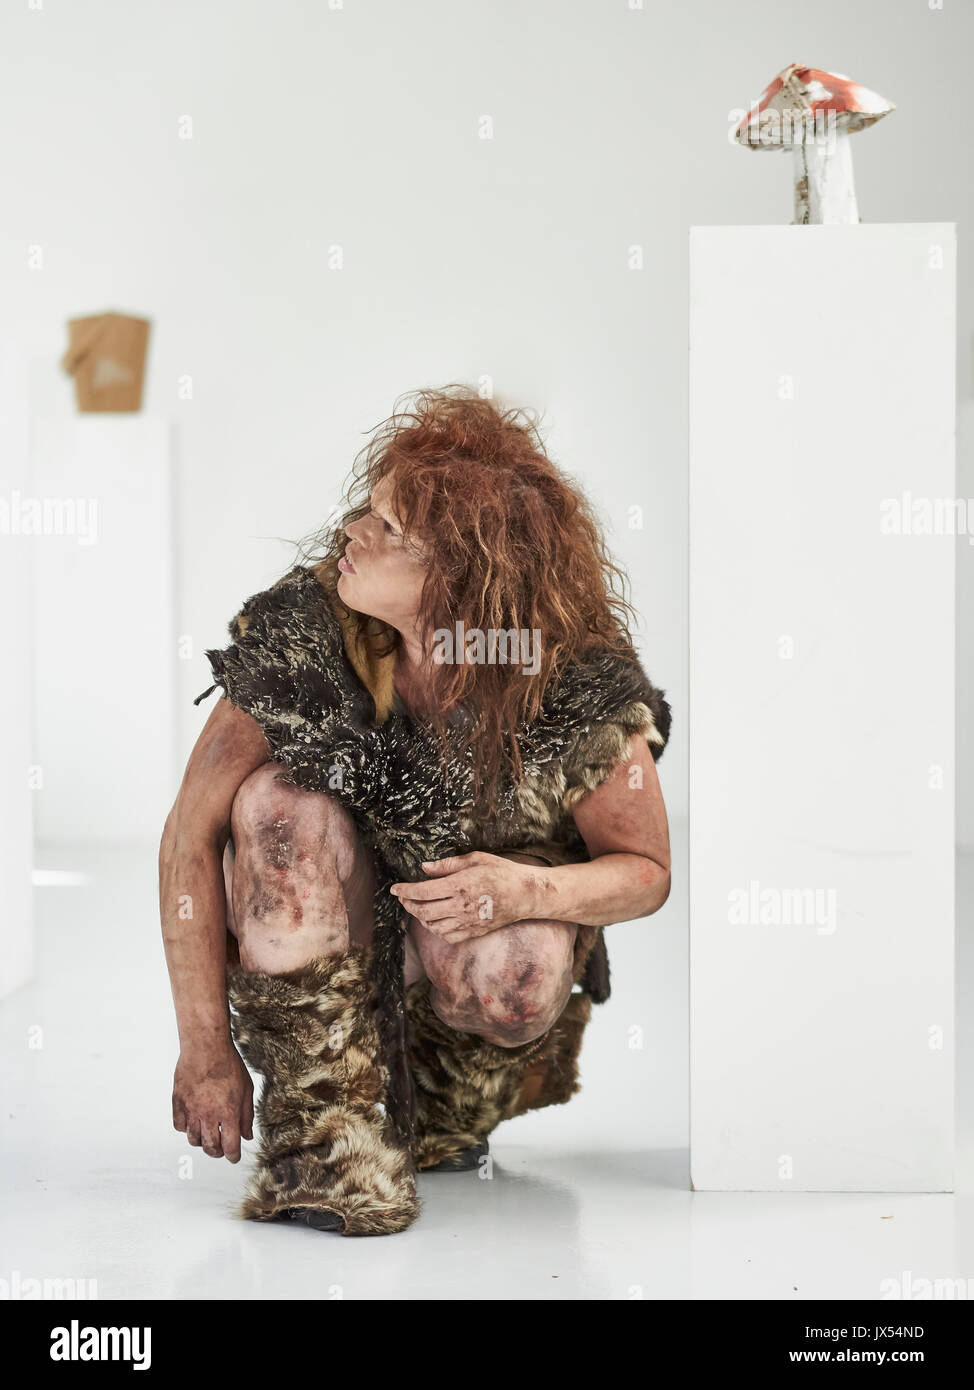 A primative prehistoric cave woman in an art gallery - Stock Image